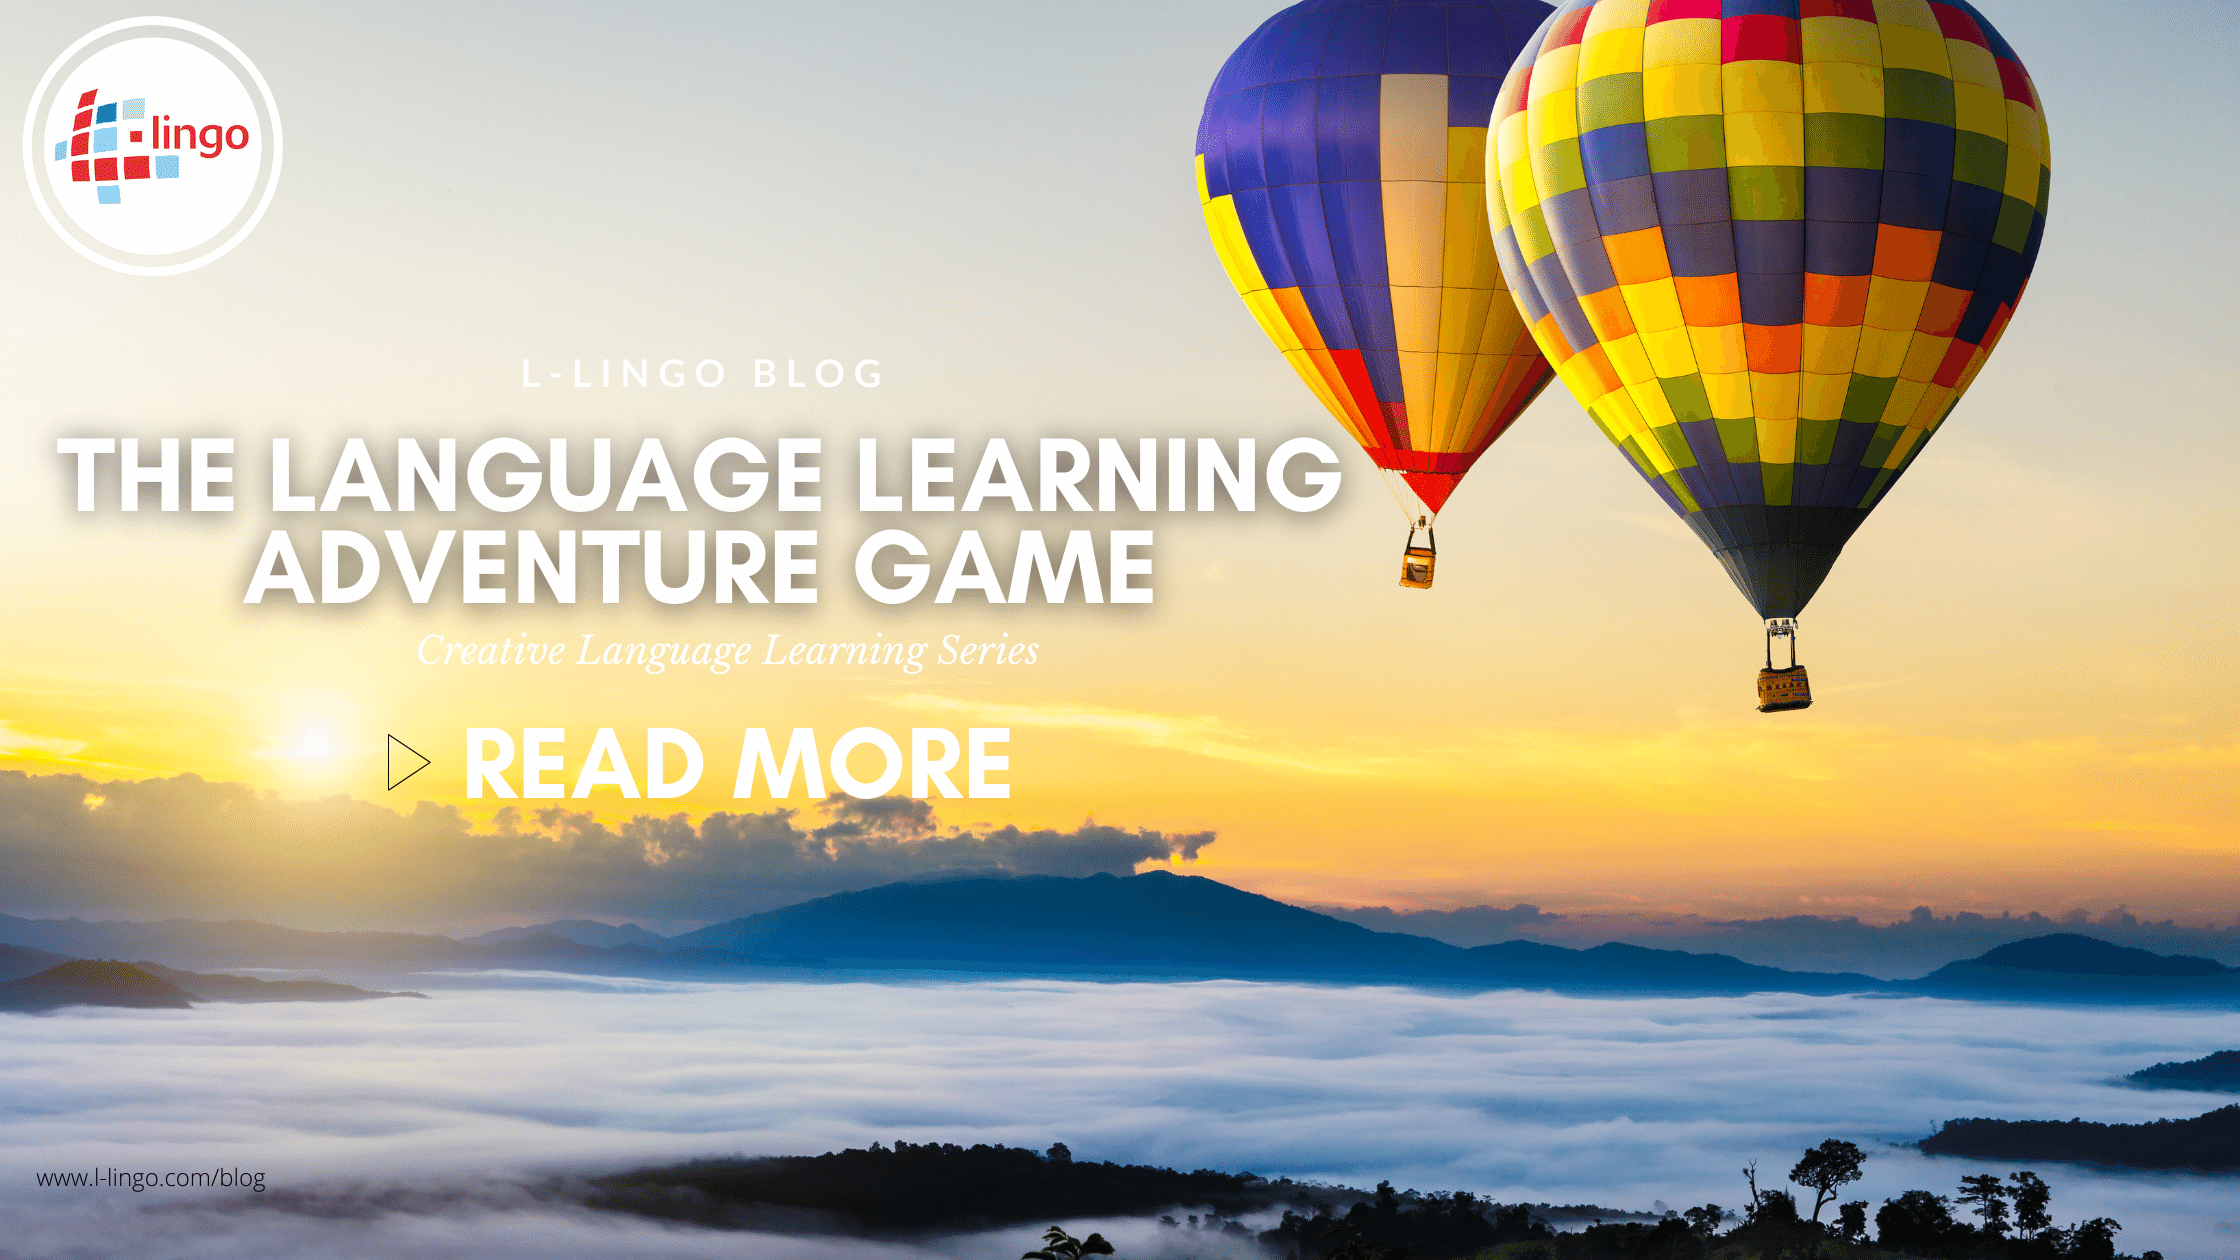 L-LINGO BLOG The Language Learning Adventure Game